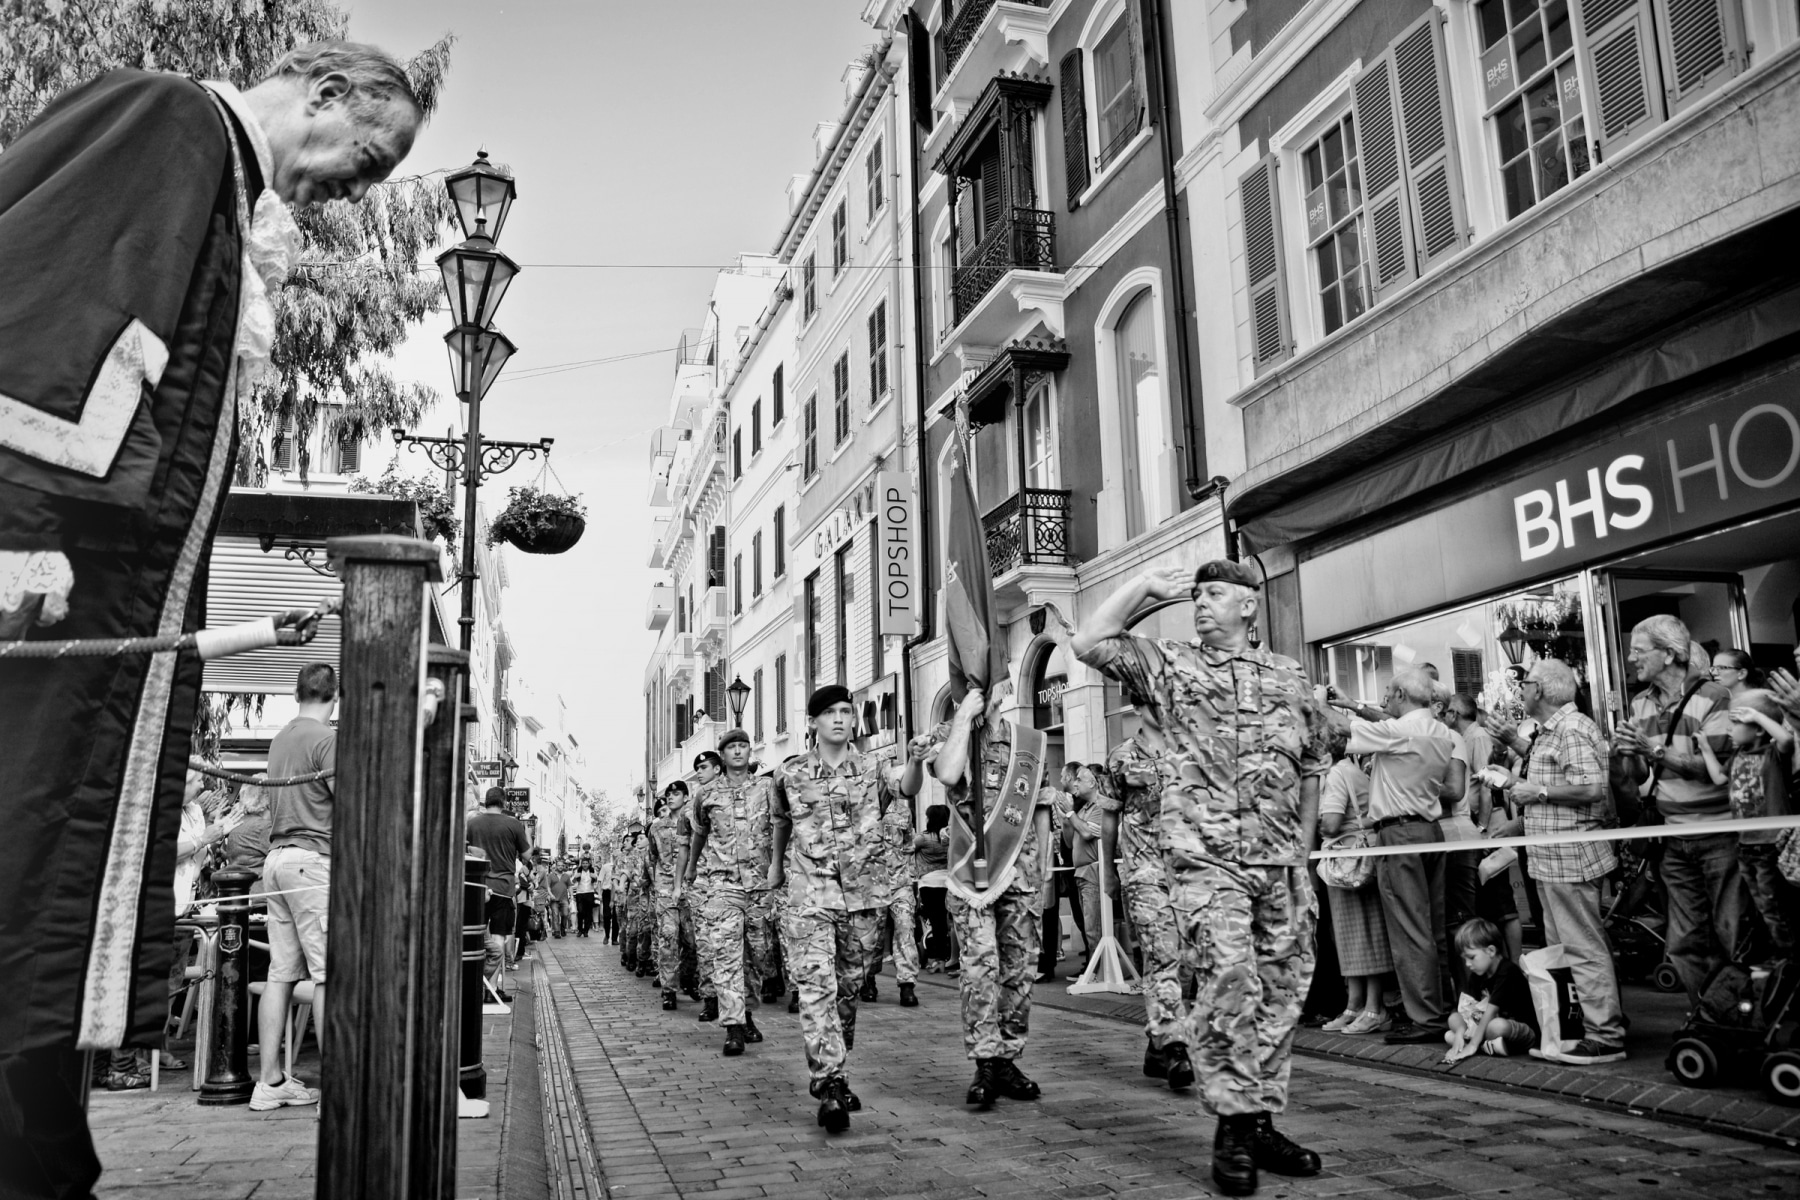 regiment-freedom-of-city-0118-bw_15253196319_o